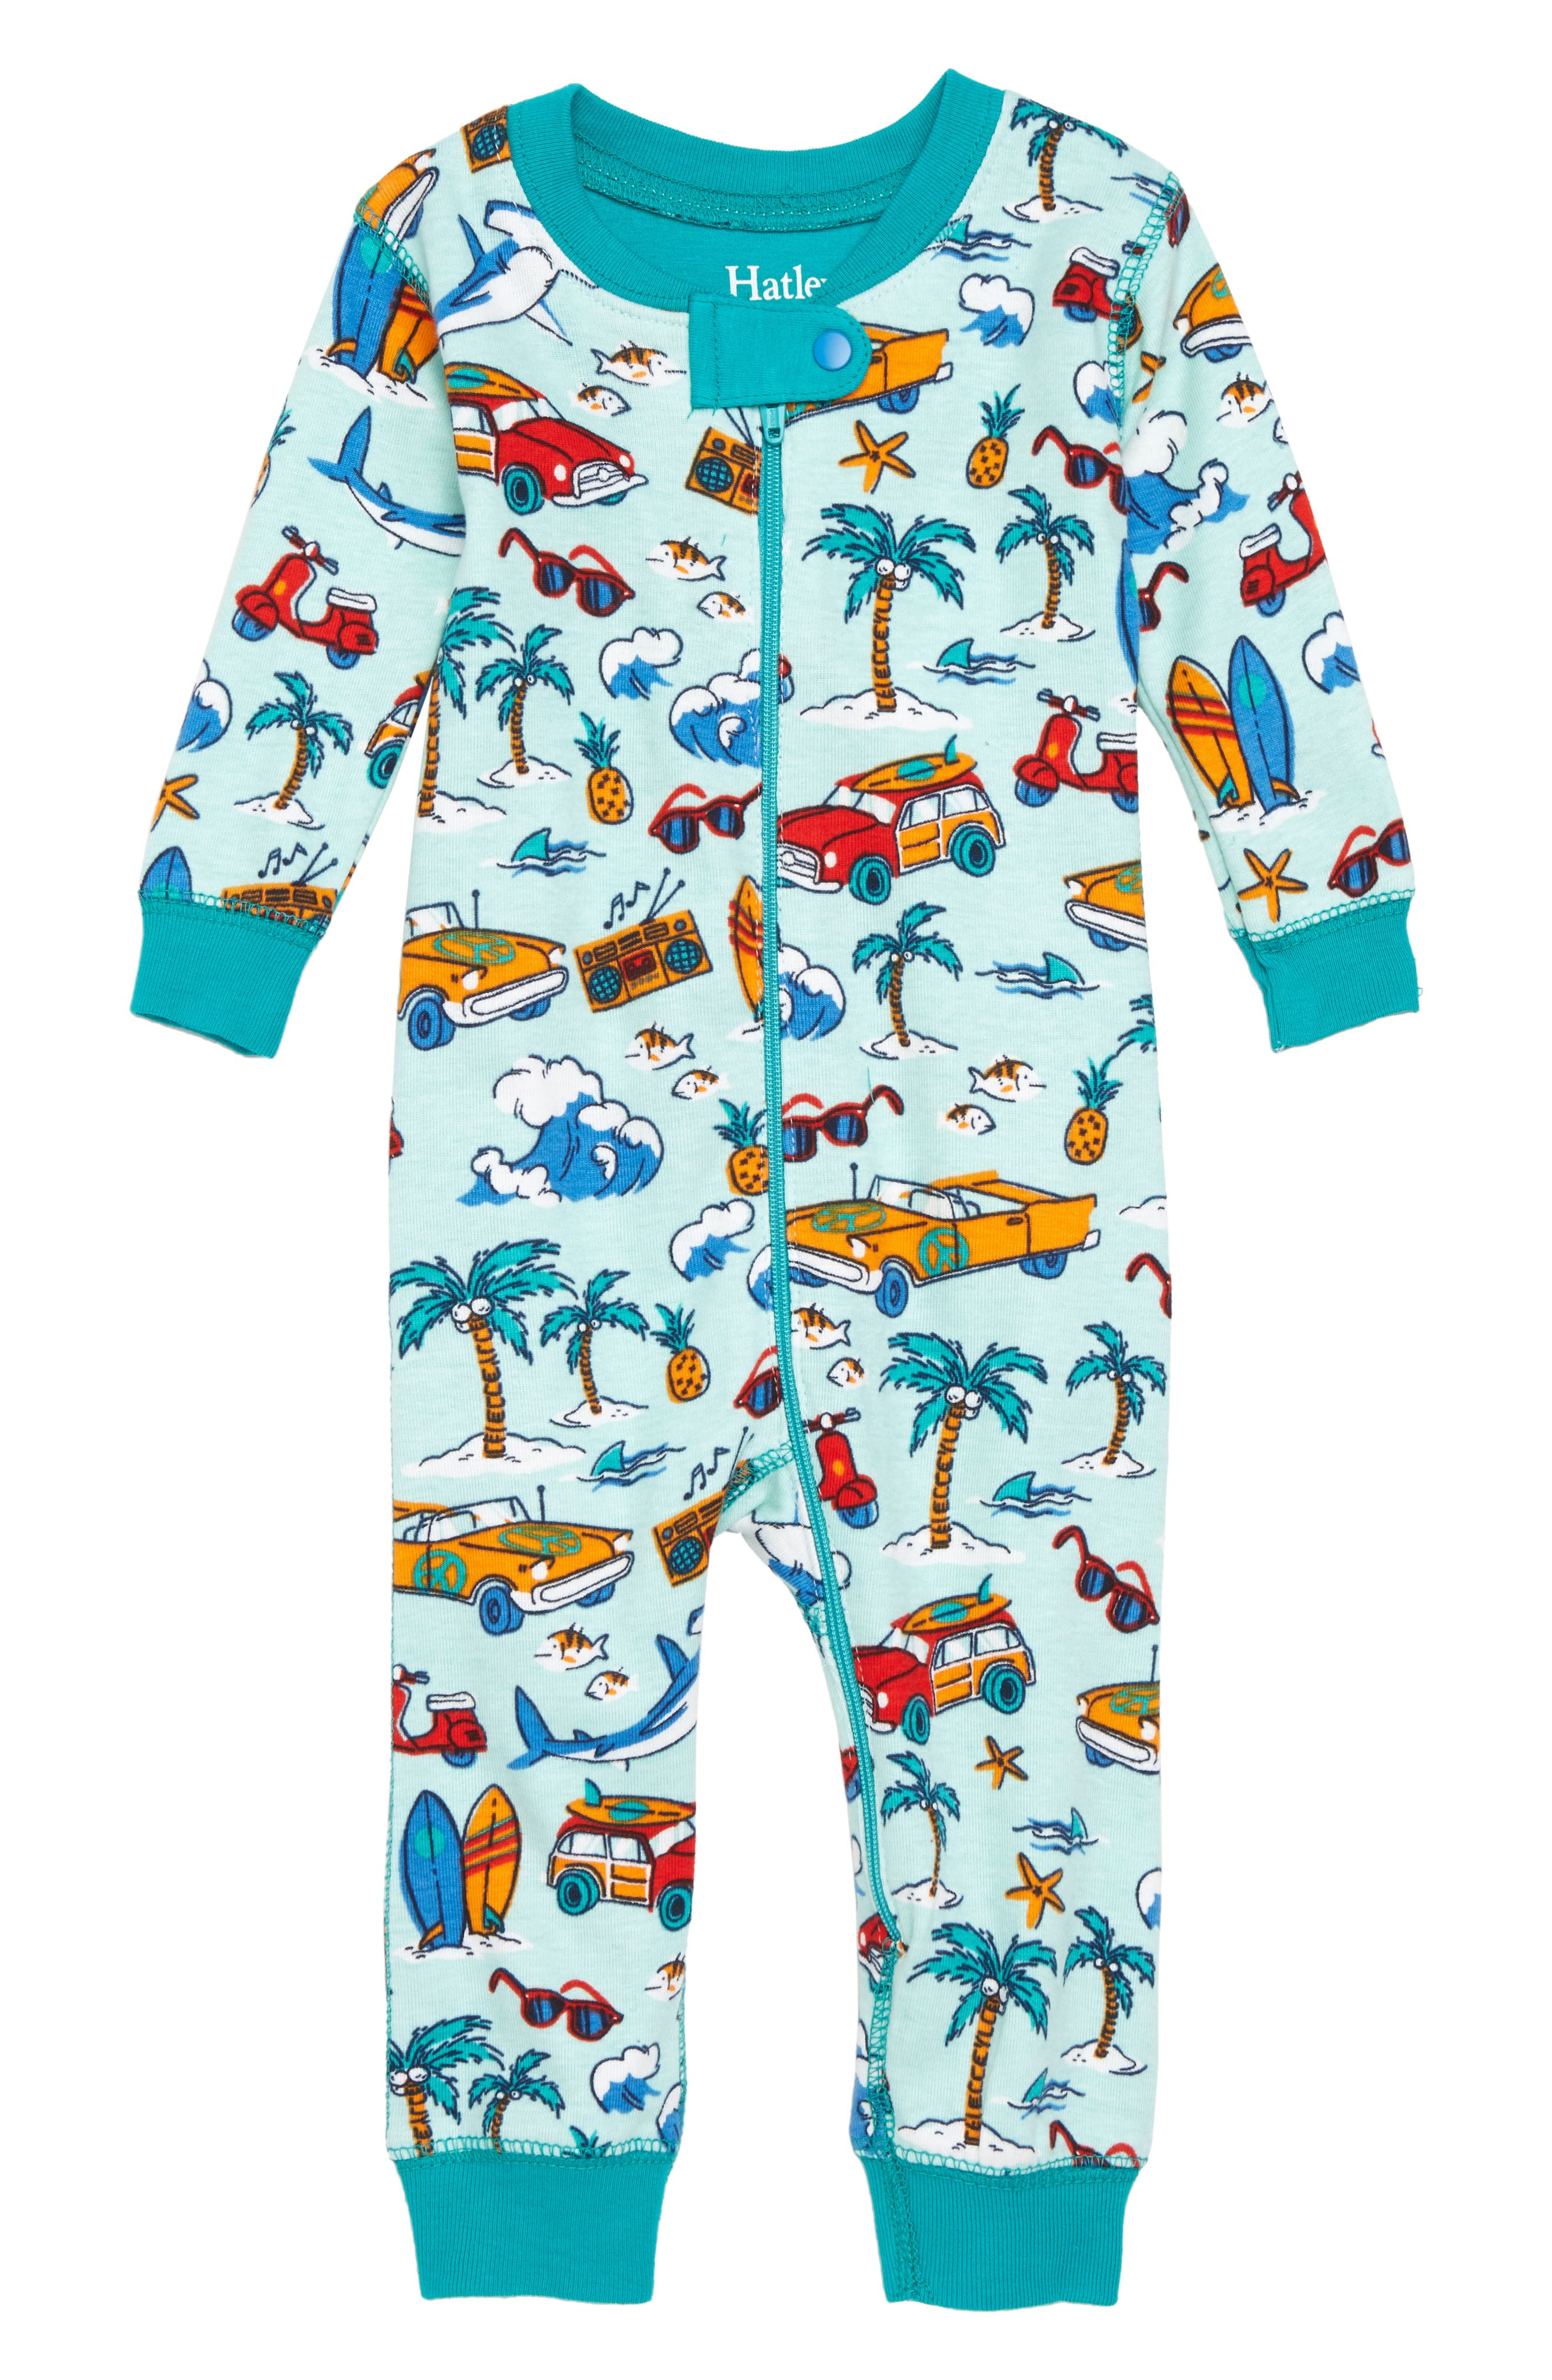 Haltey Organic Cotton Fitted One-Piece Pajamas,                             Main thumbnail 1, color,                             Surf Island